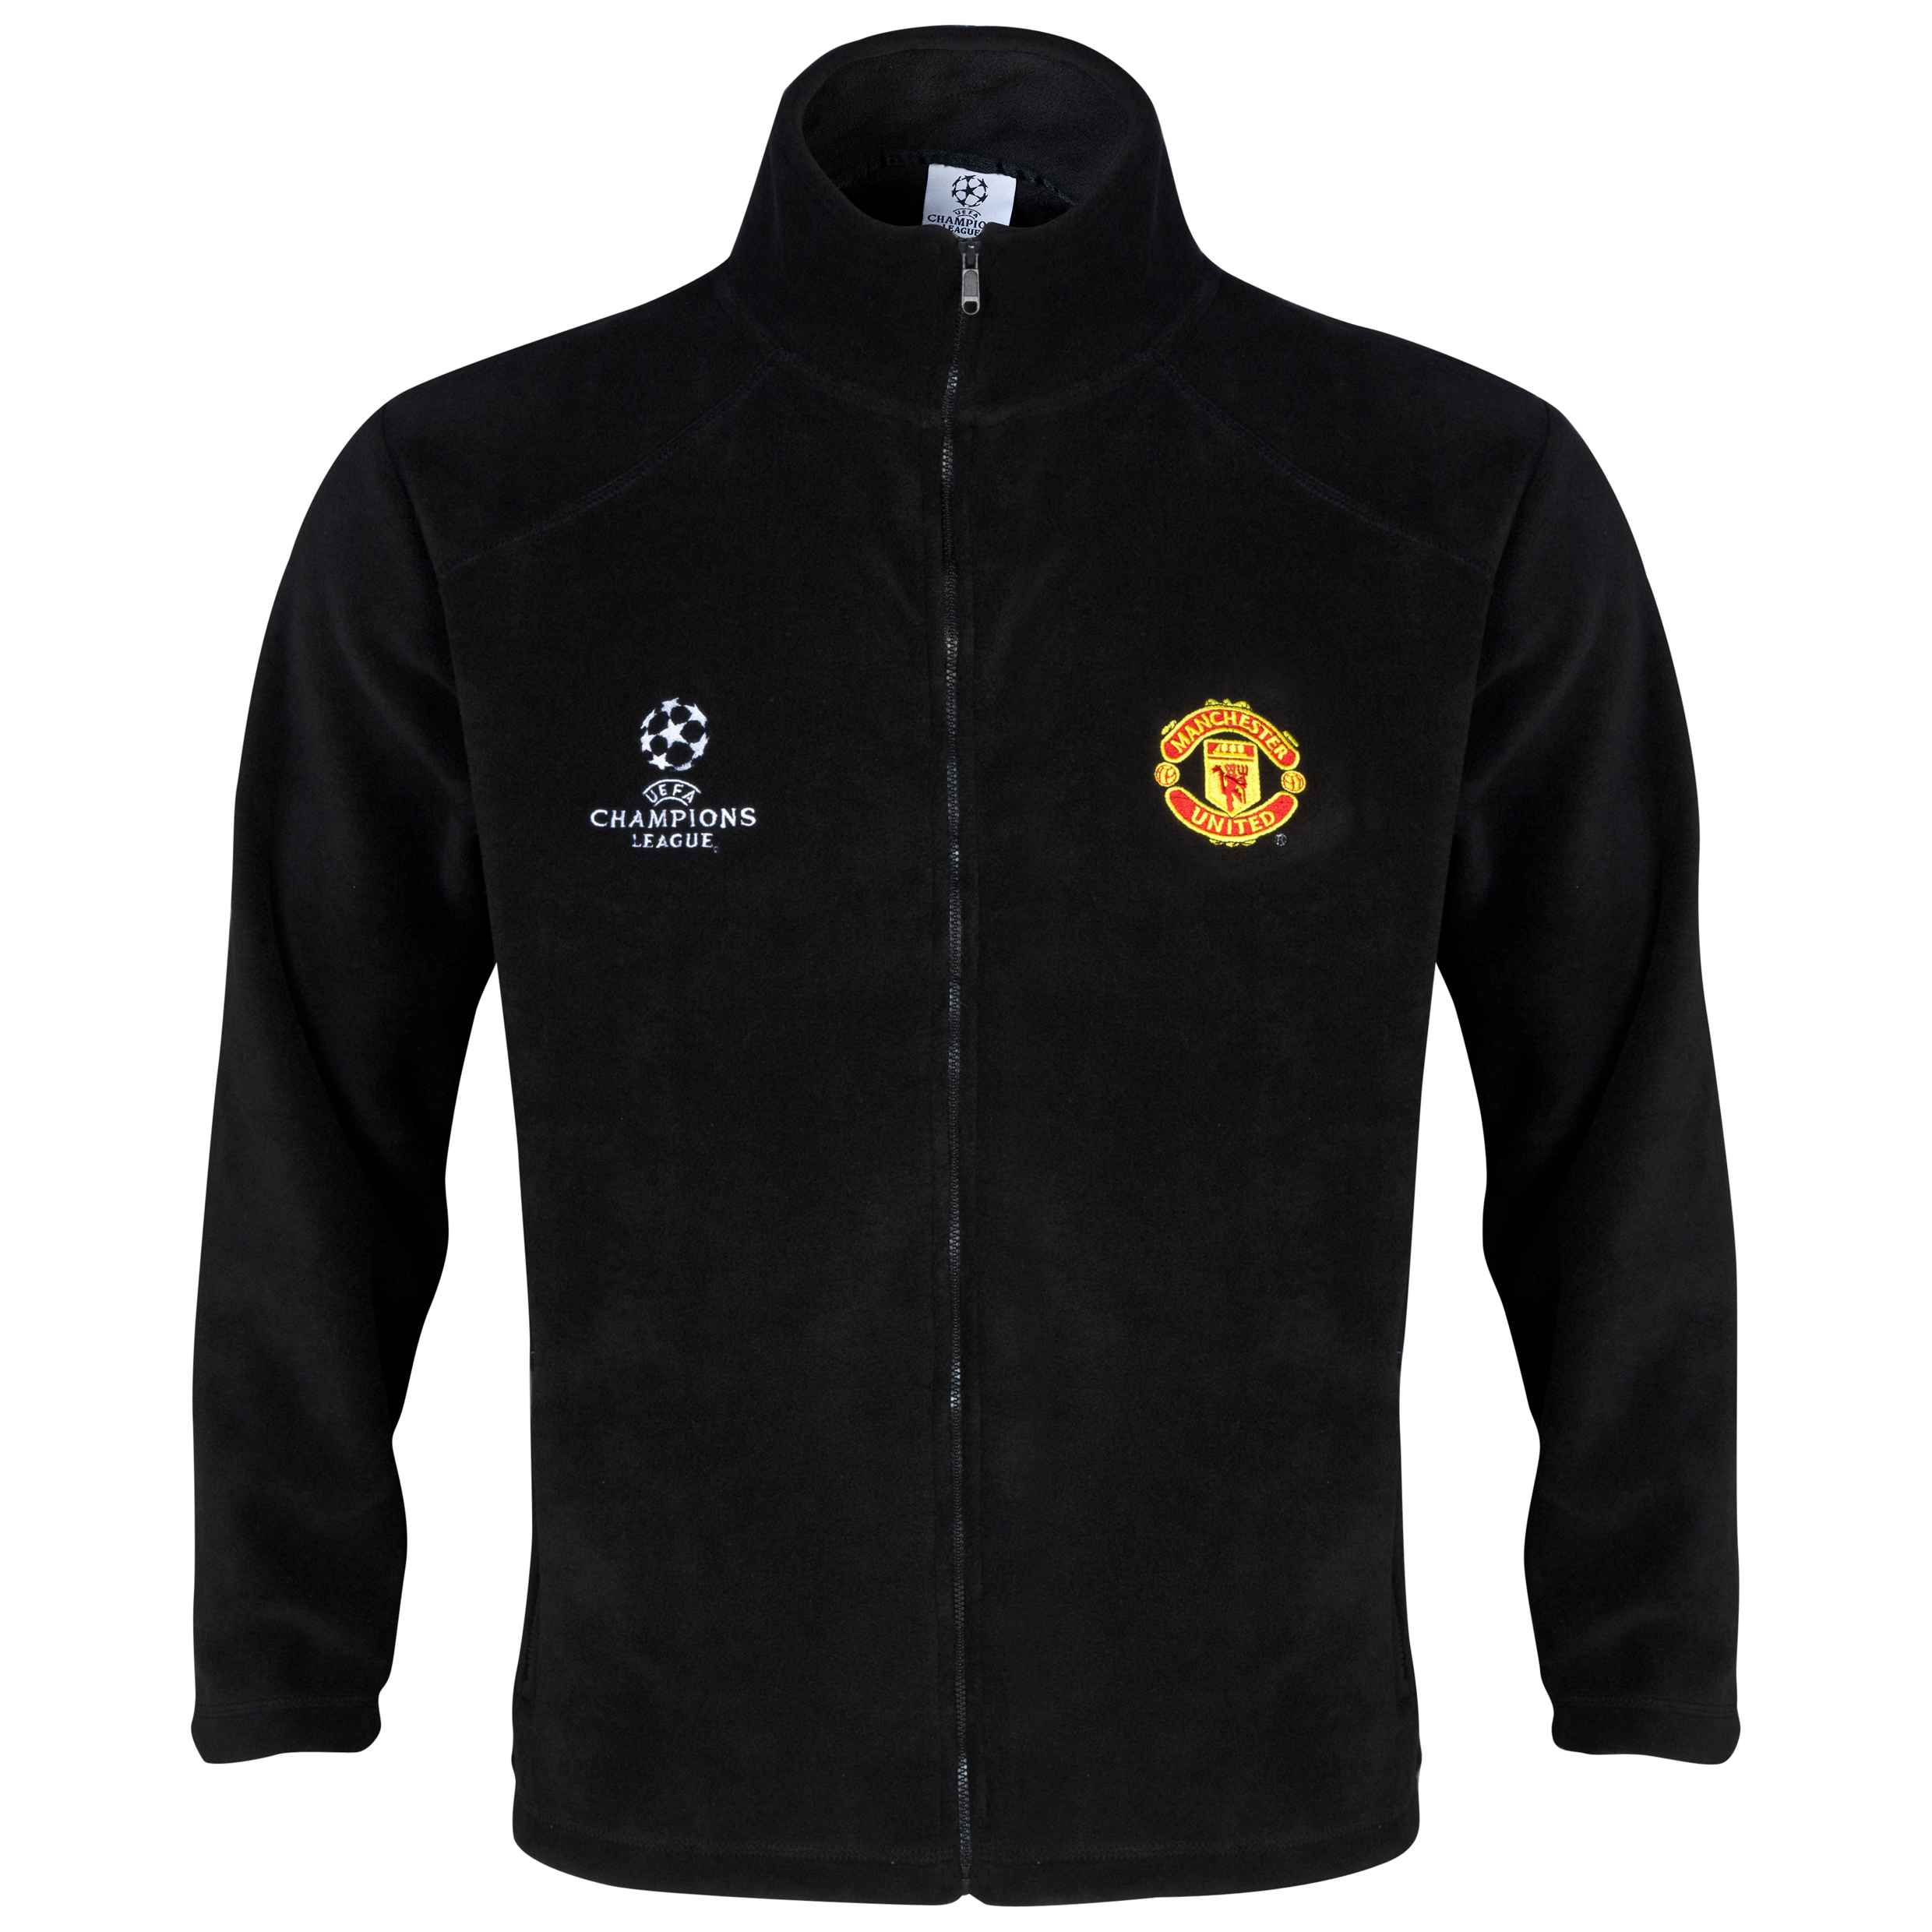 Manchester United UEFA Champions League Fleece Jacket - Mens Black